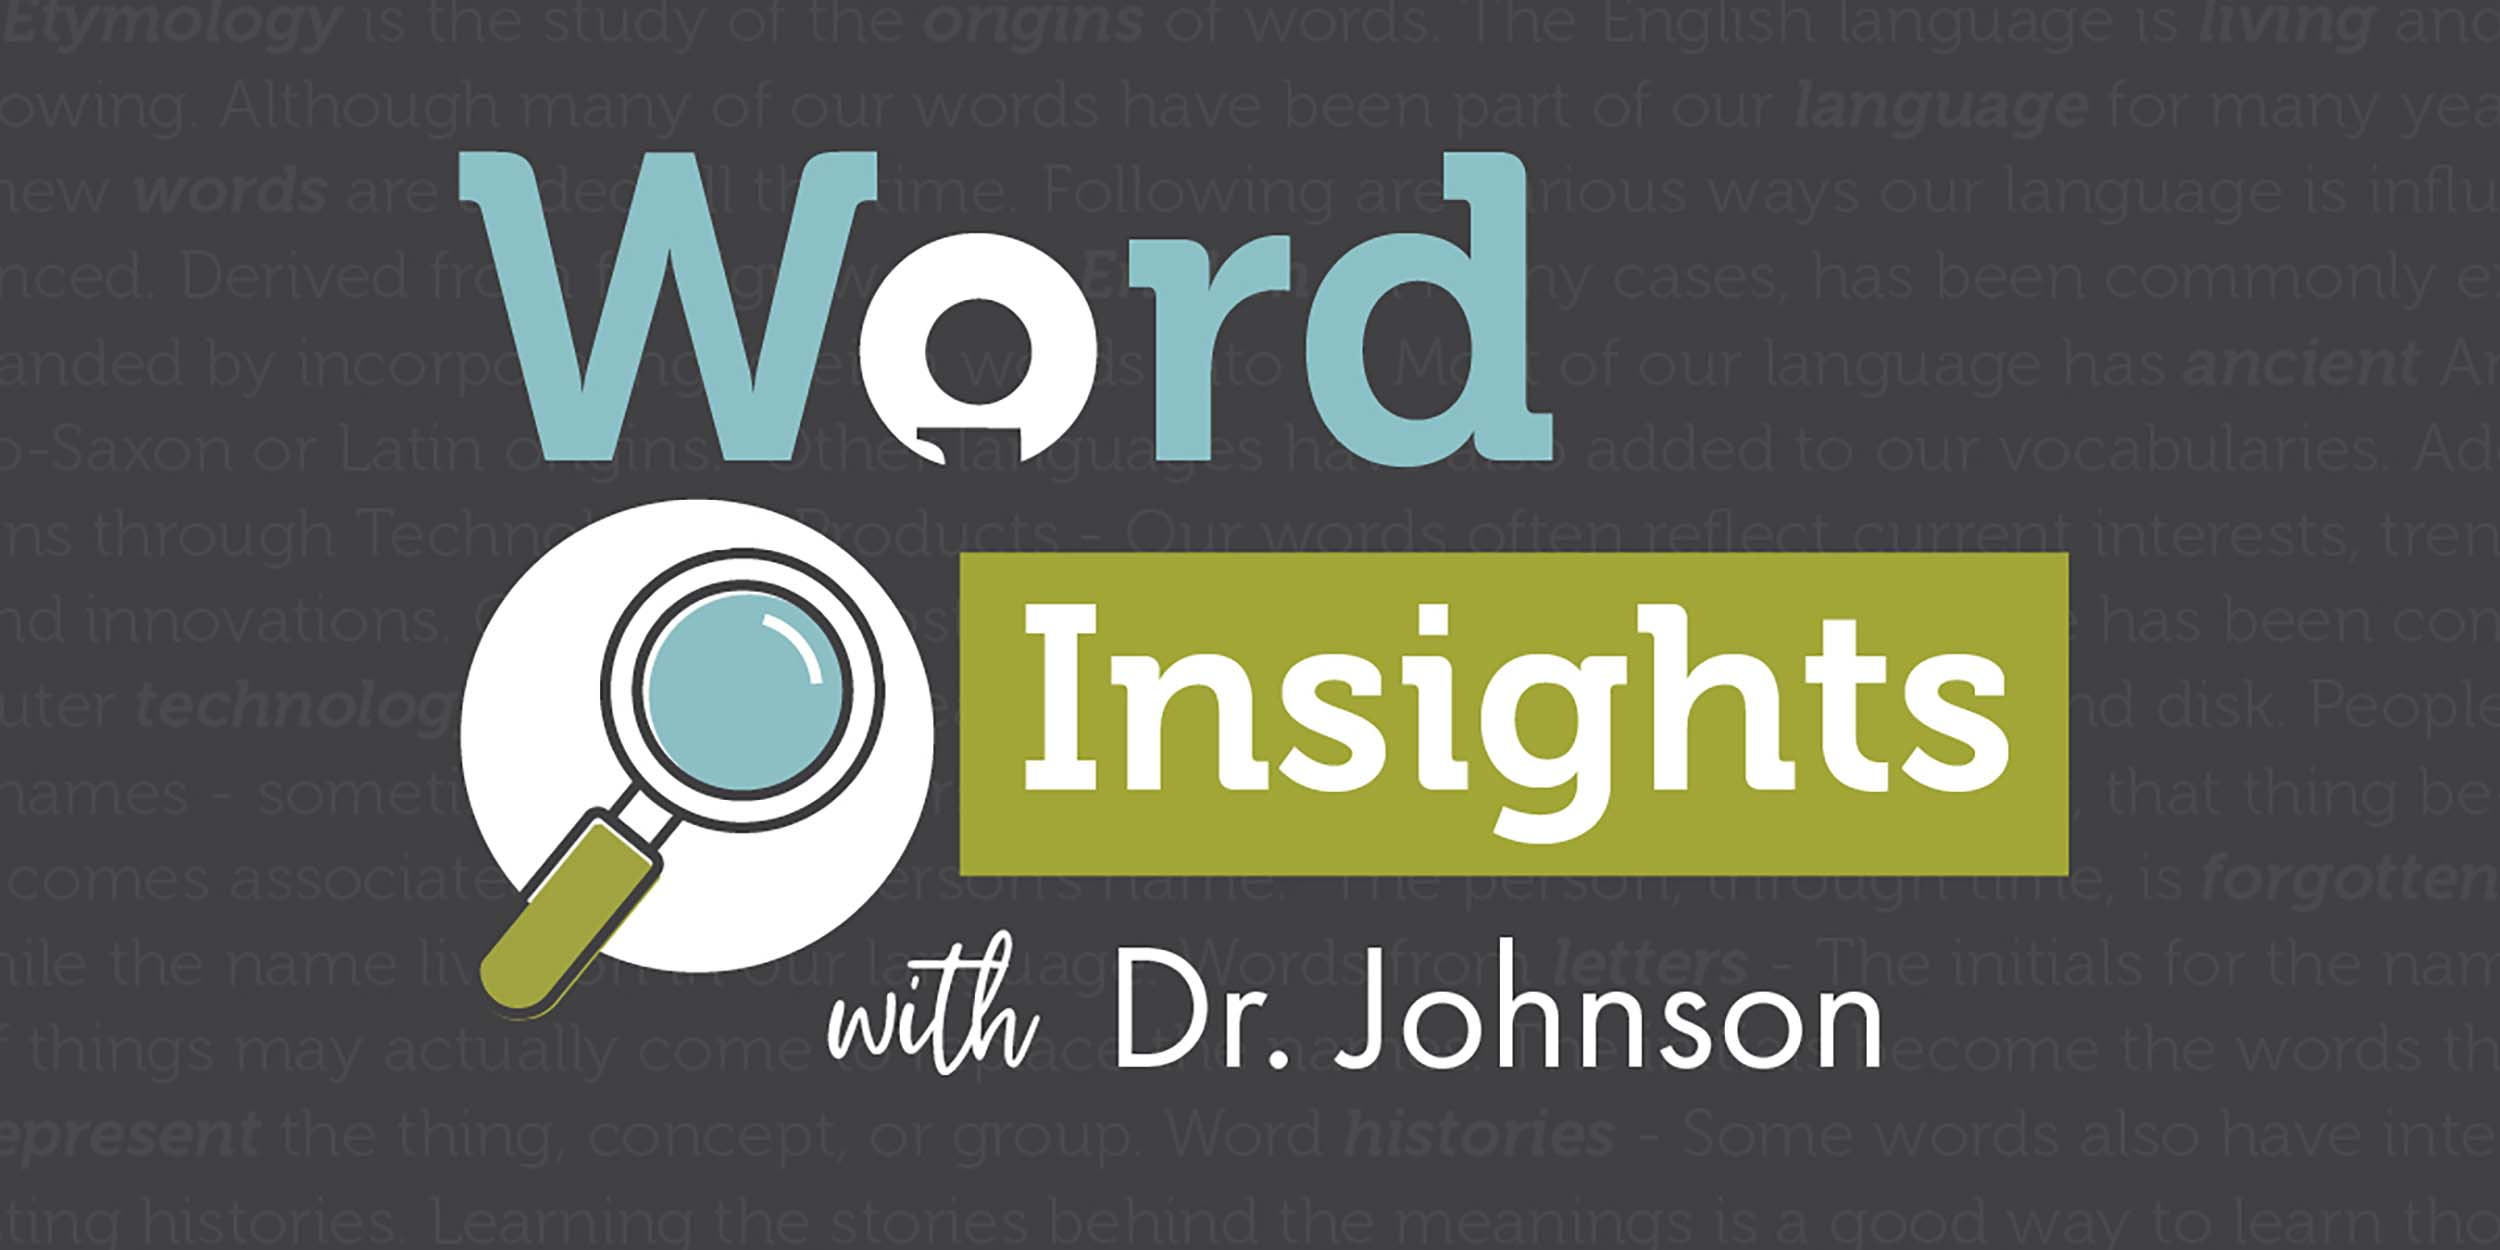 Award-winning Dr. Johnson Leads New Word Series